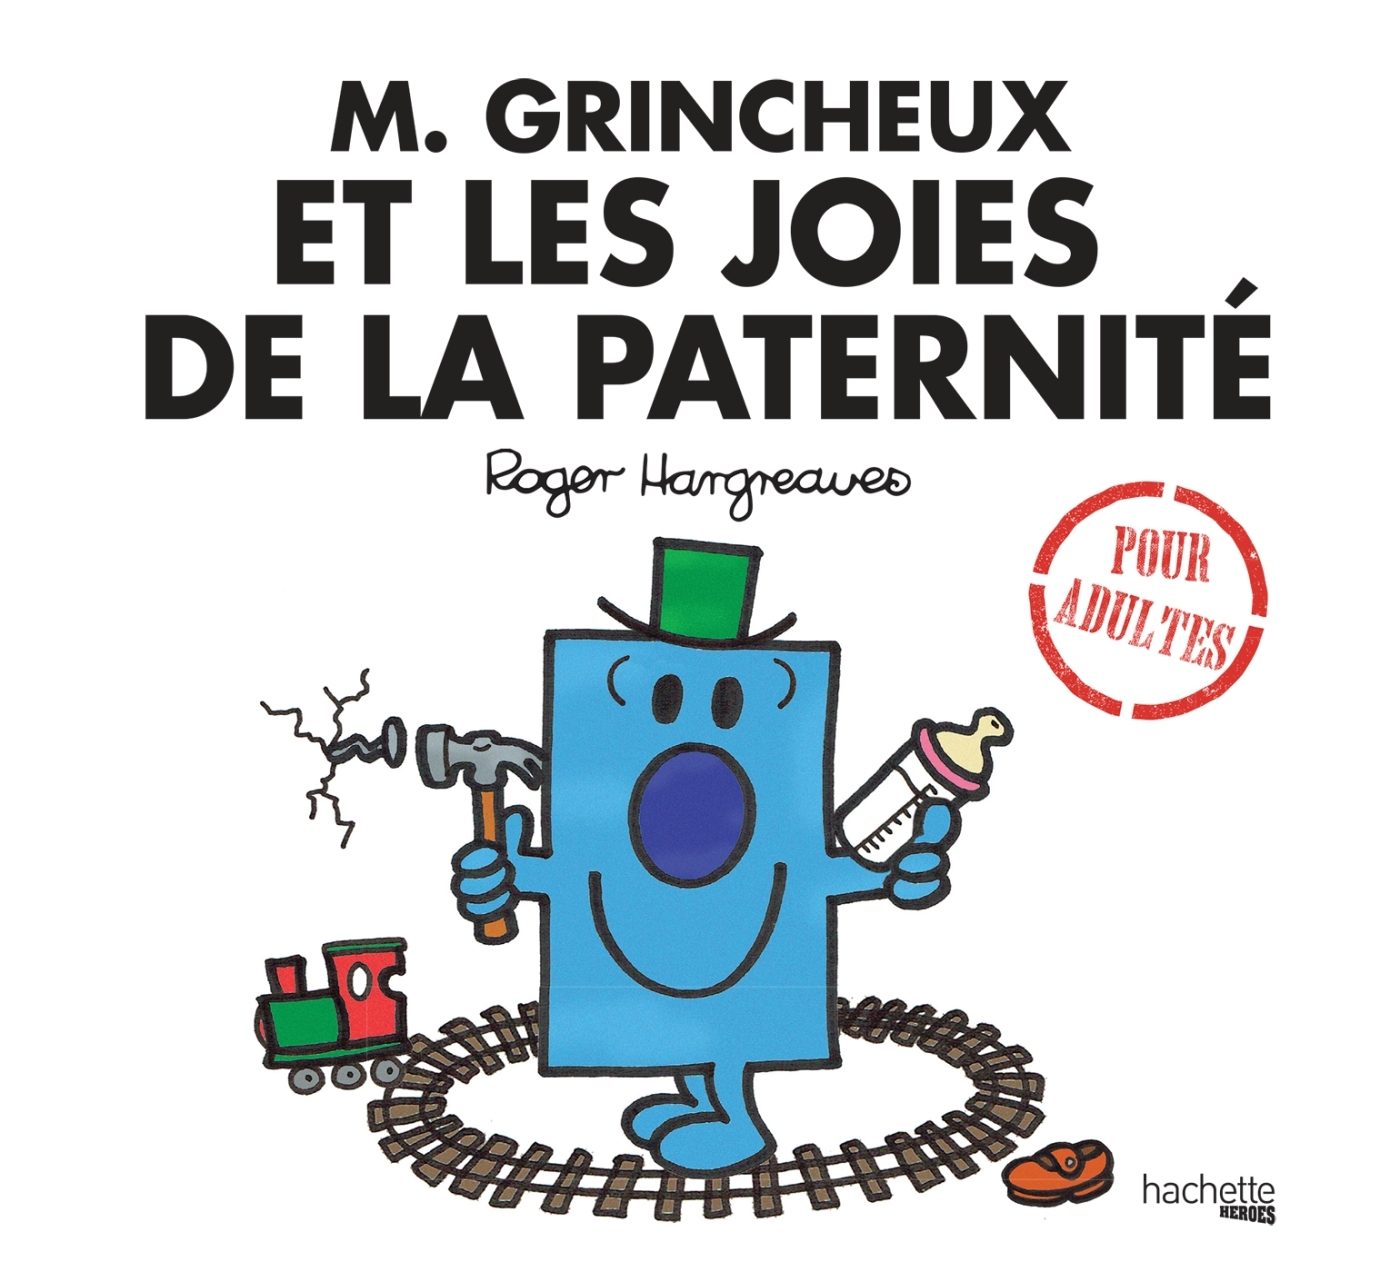 M. GRINCHEUX ET LES JOIES DE LA PATERNITE